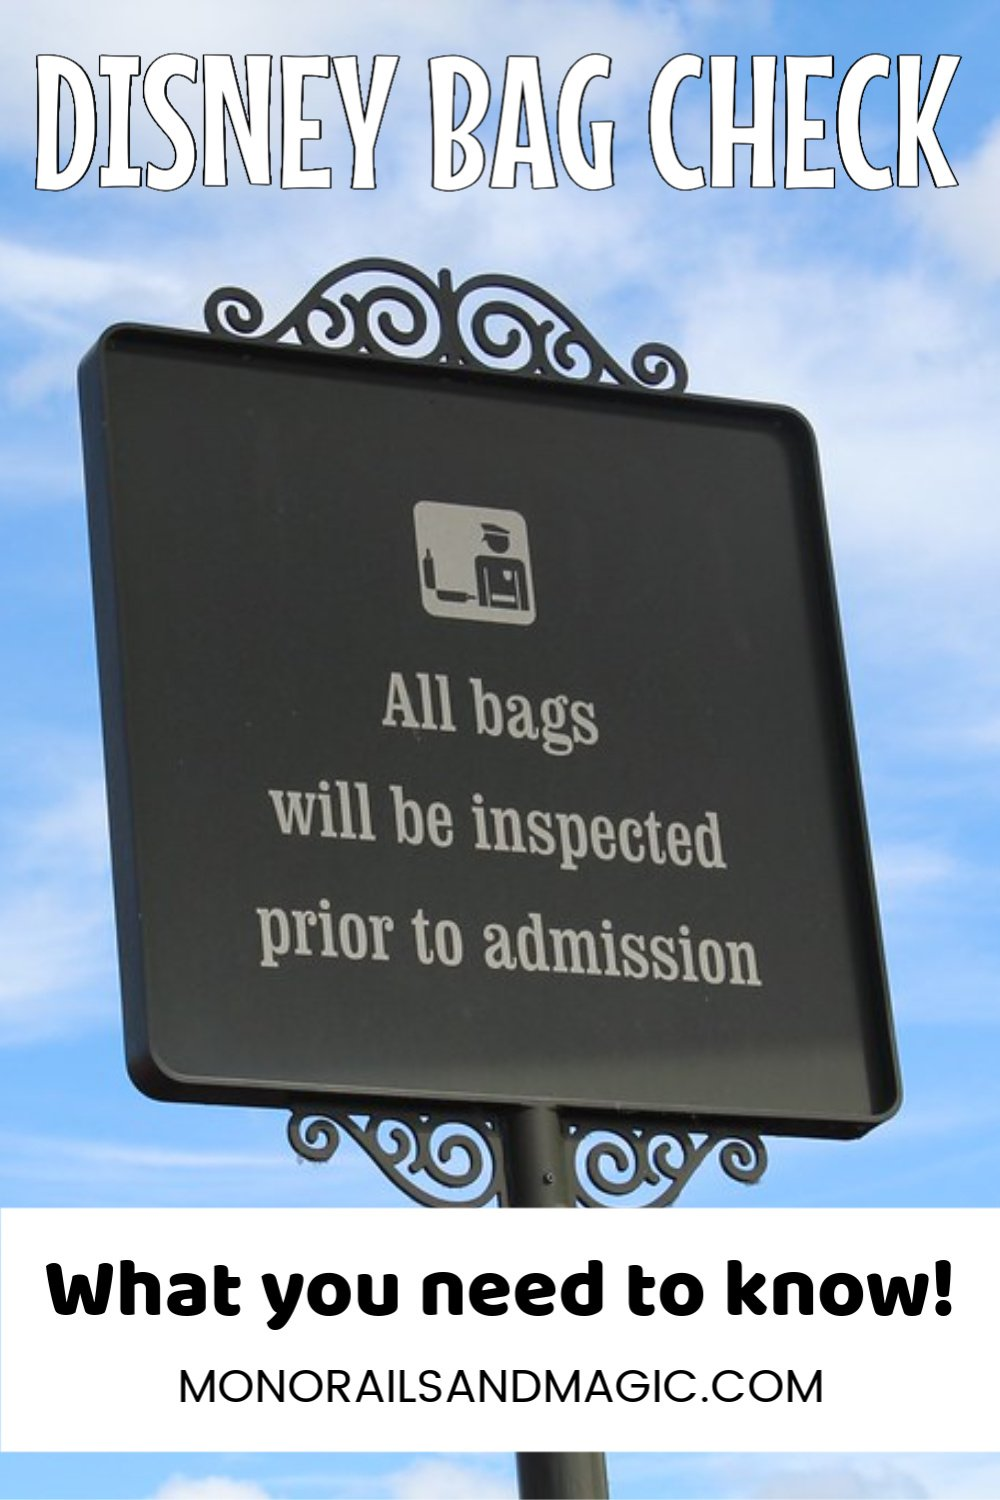 5 Tips for Bag Check at the Disney Parks